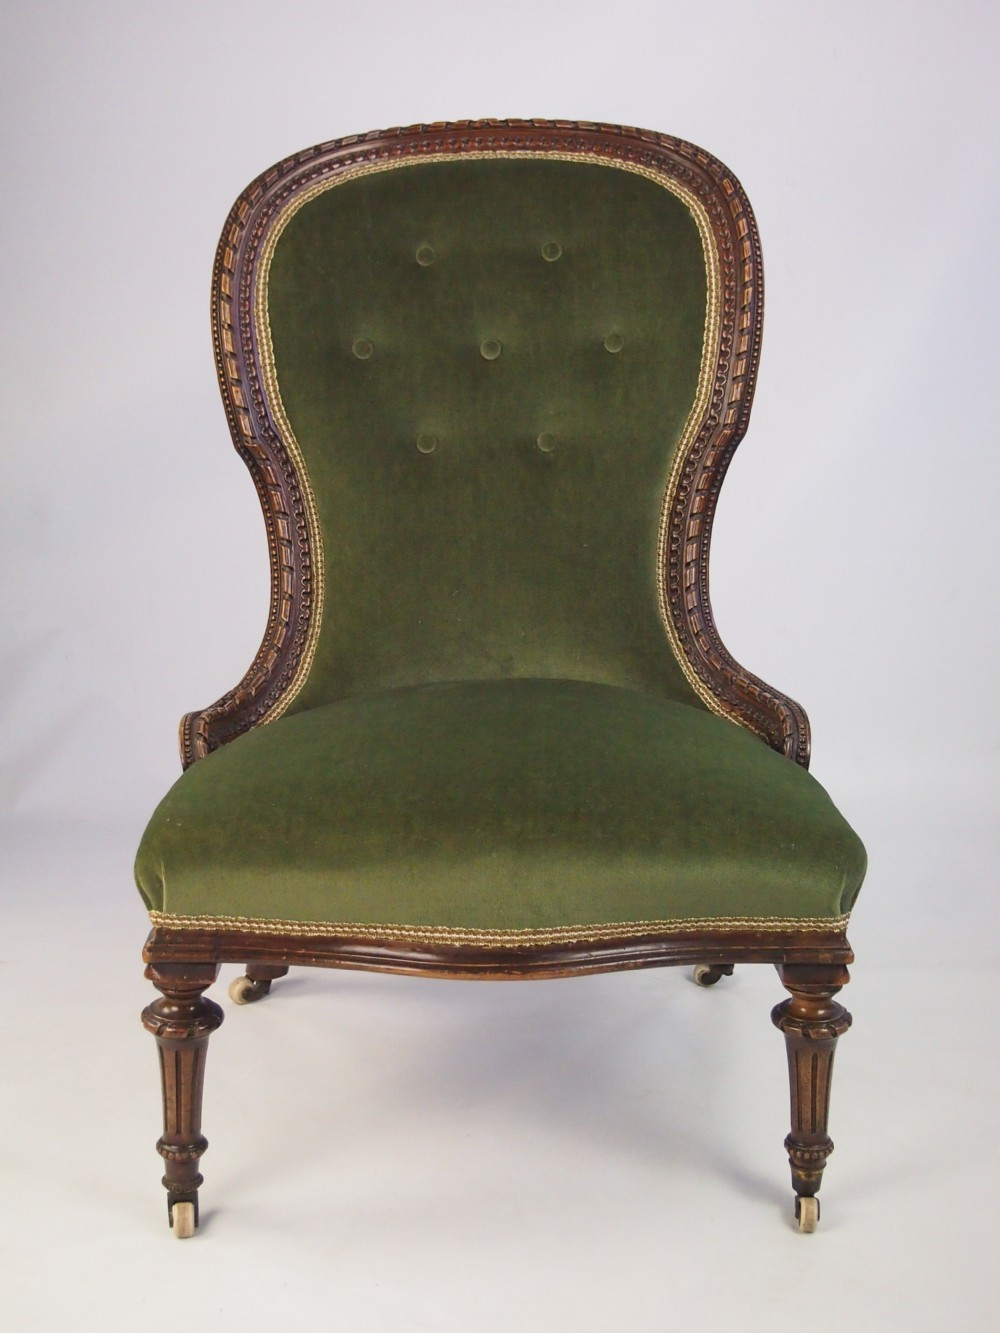 Antique Victorian Walnut Balloon Back Chair With Extensive Carving